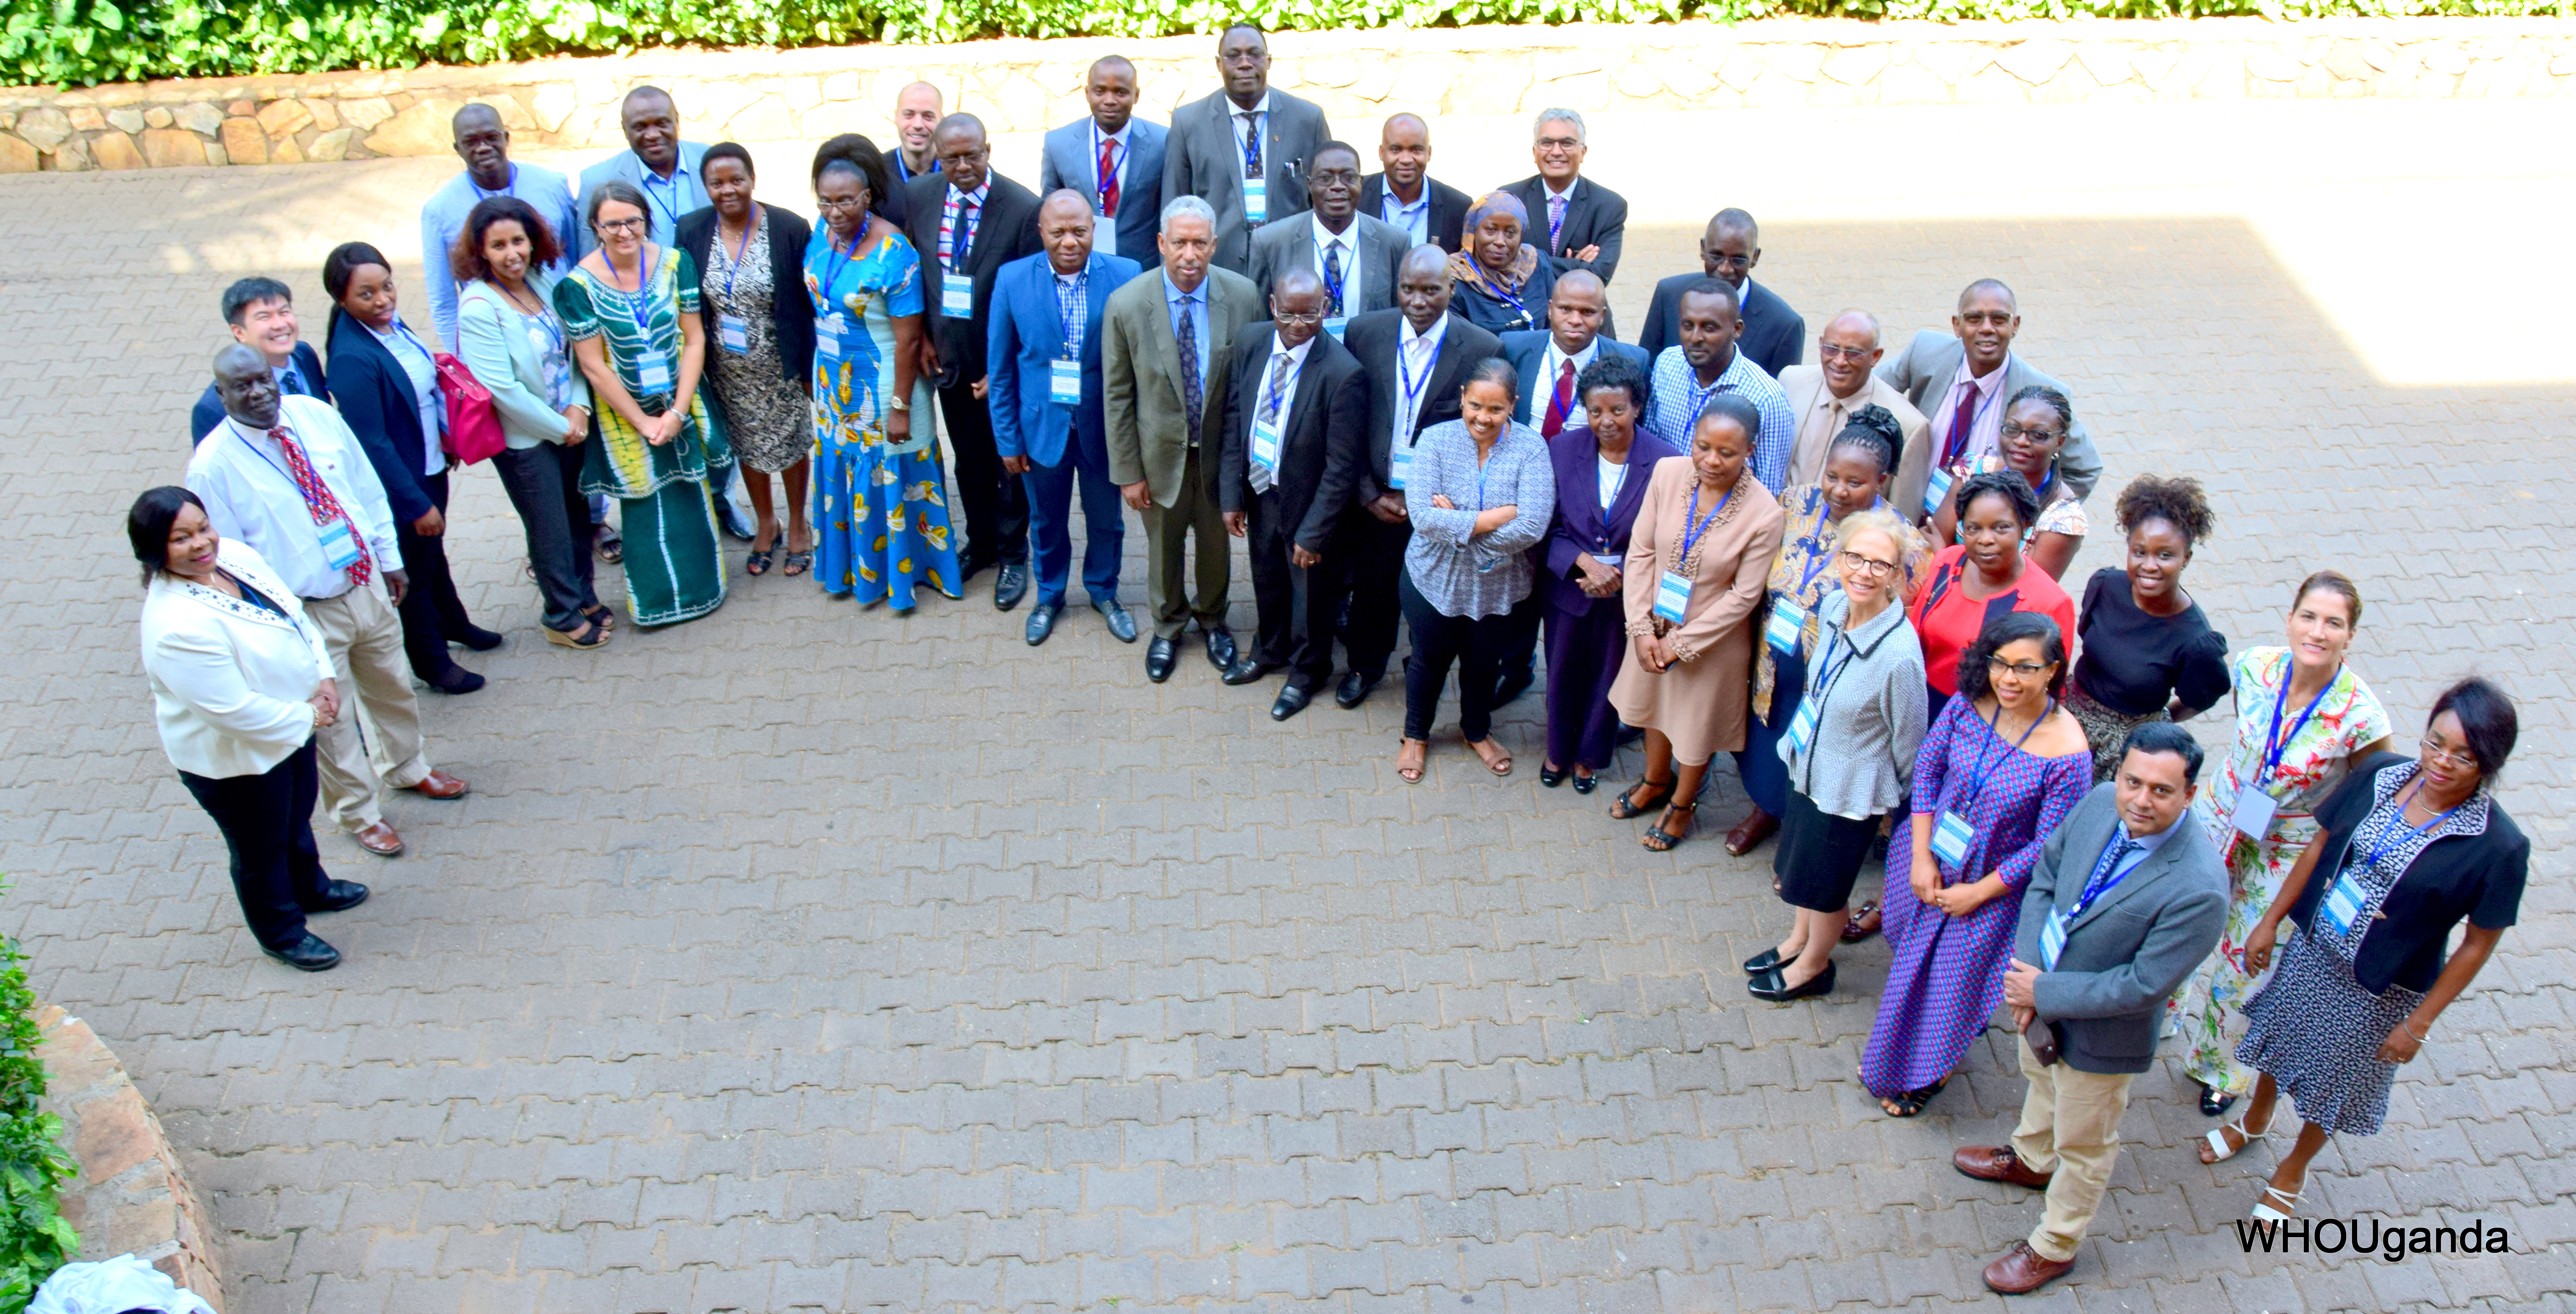 A workshop was convened to address the urgent need for countries to strengthen regional and national capacity in the areas of Infection Prevention and Control (IPC) given the ever increasing number of infectious disease outbreaks in many parts of the world.